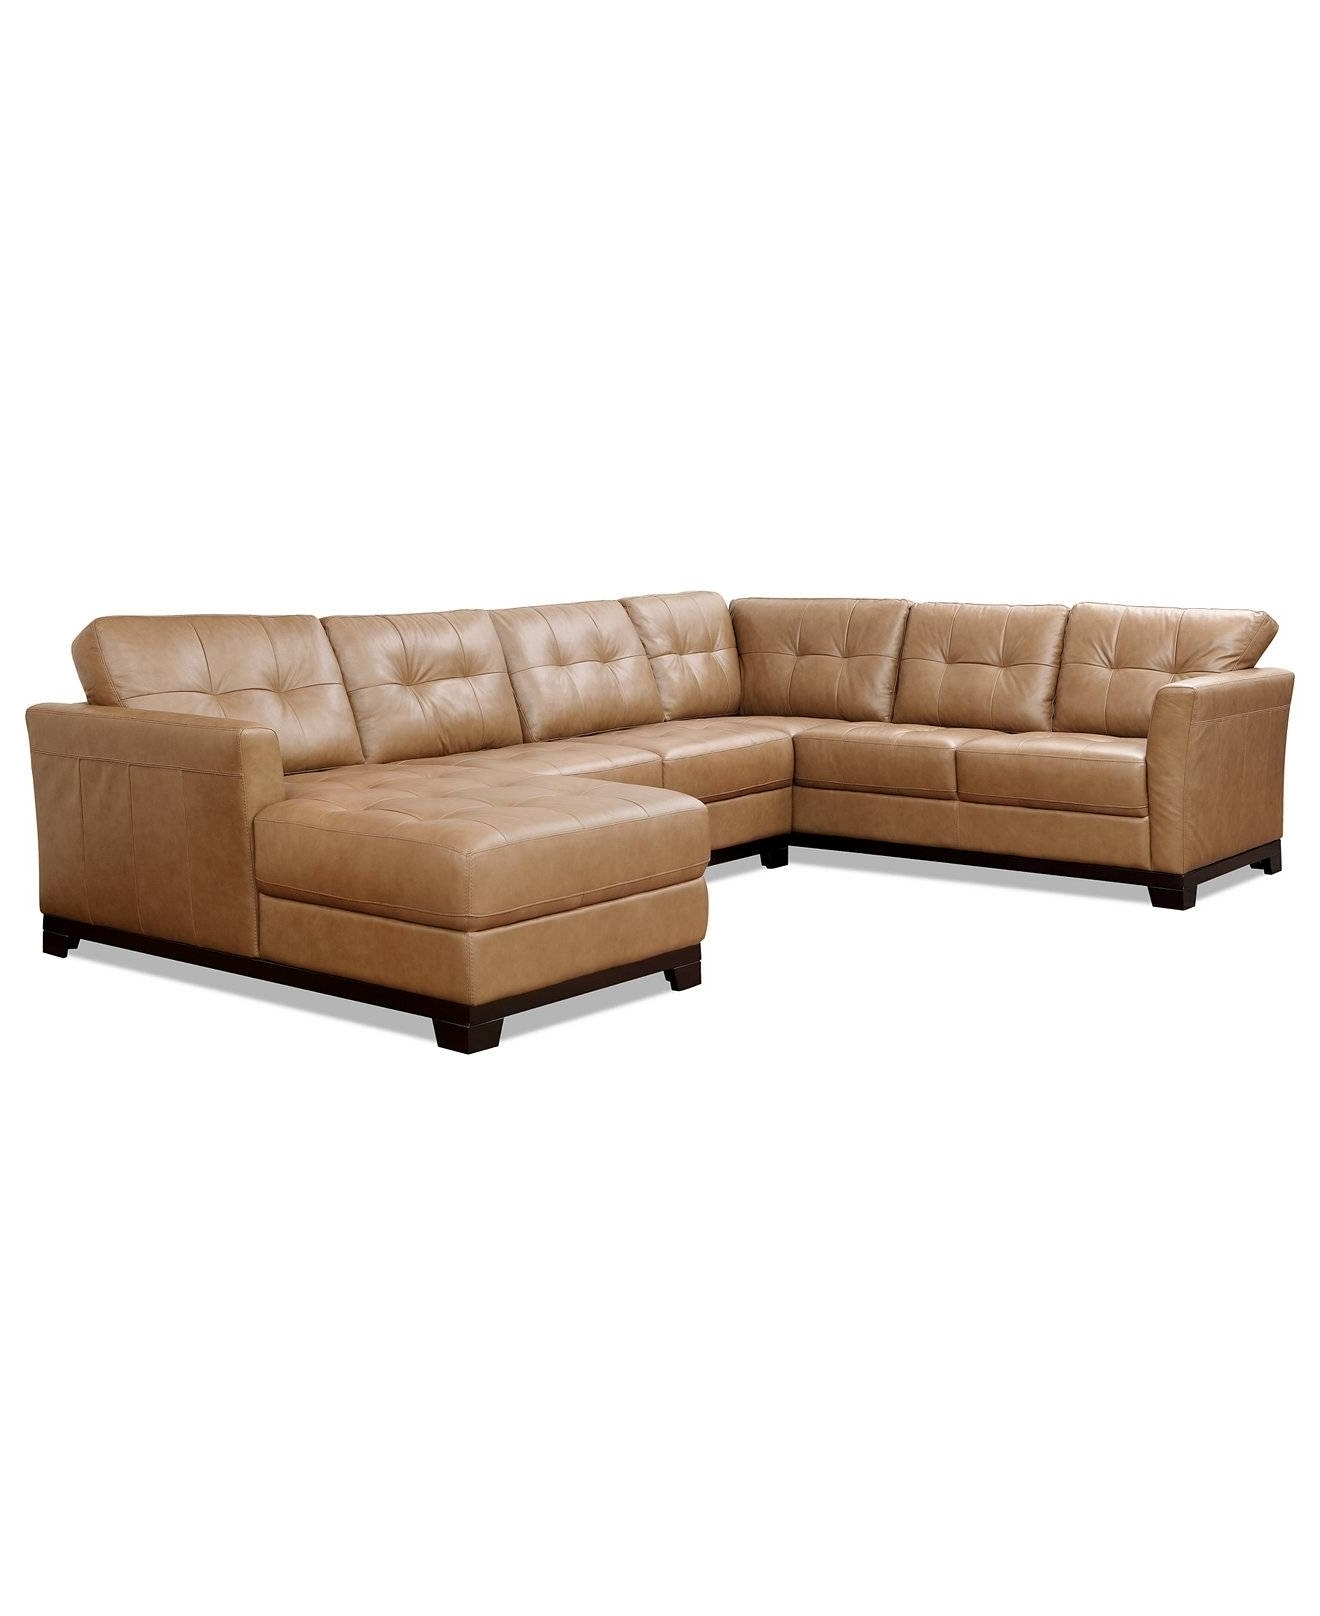 Macys Leather Sofas Regarding Recent Leather Sectional Sofa Macys • Leather Sofa (View 12 of 20)